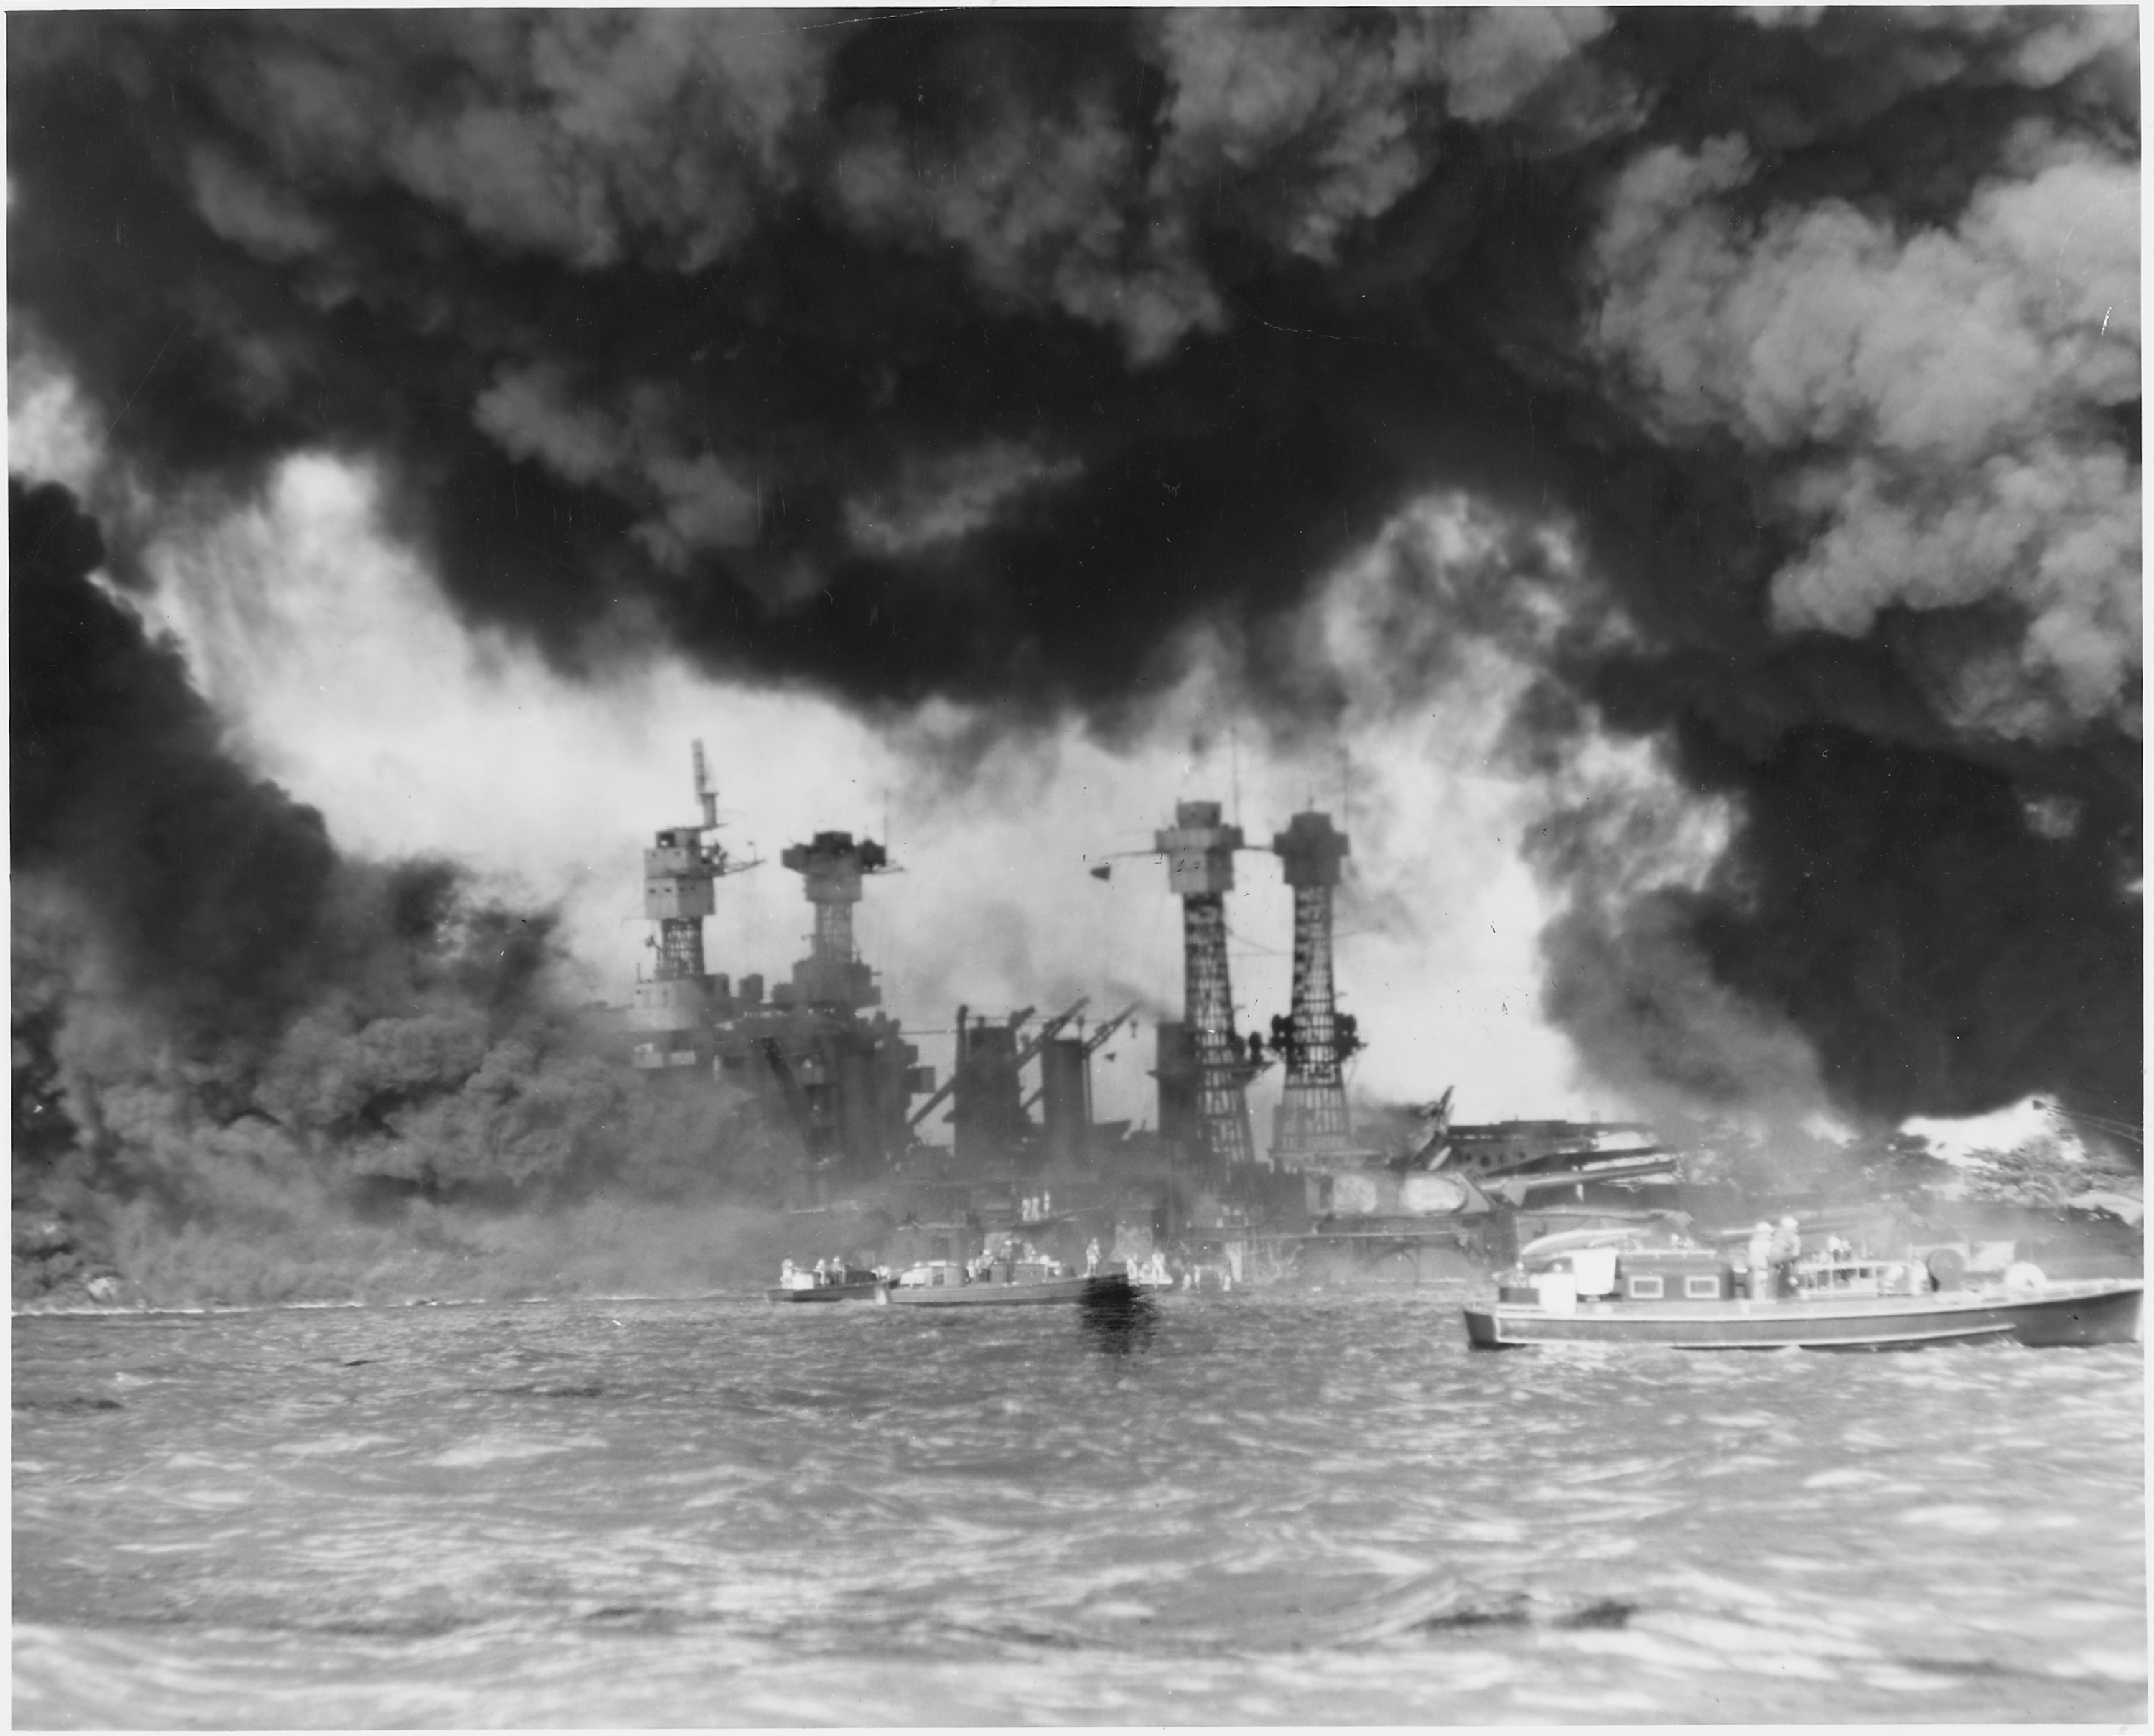 the 1941 attack on pearl harbor history essay Scenario:(pearl harbor)on december 7th, 1941, the empire of japan attacked the state of hawaii on pearl harbor with 353 fighter, bomber, and torpedo aircraft which took off on 6 aircraft careers on early december 7th morning at around 730hrs(hawaiian time.